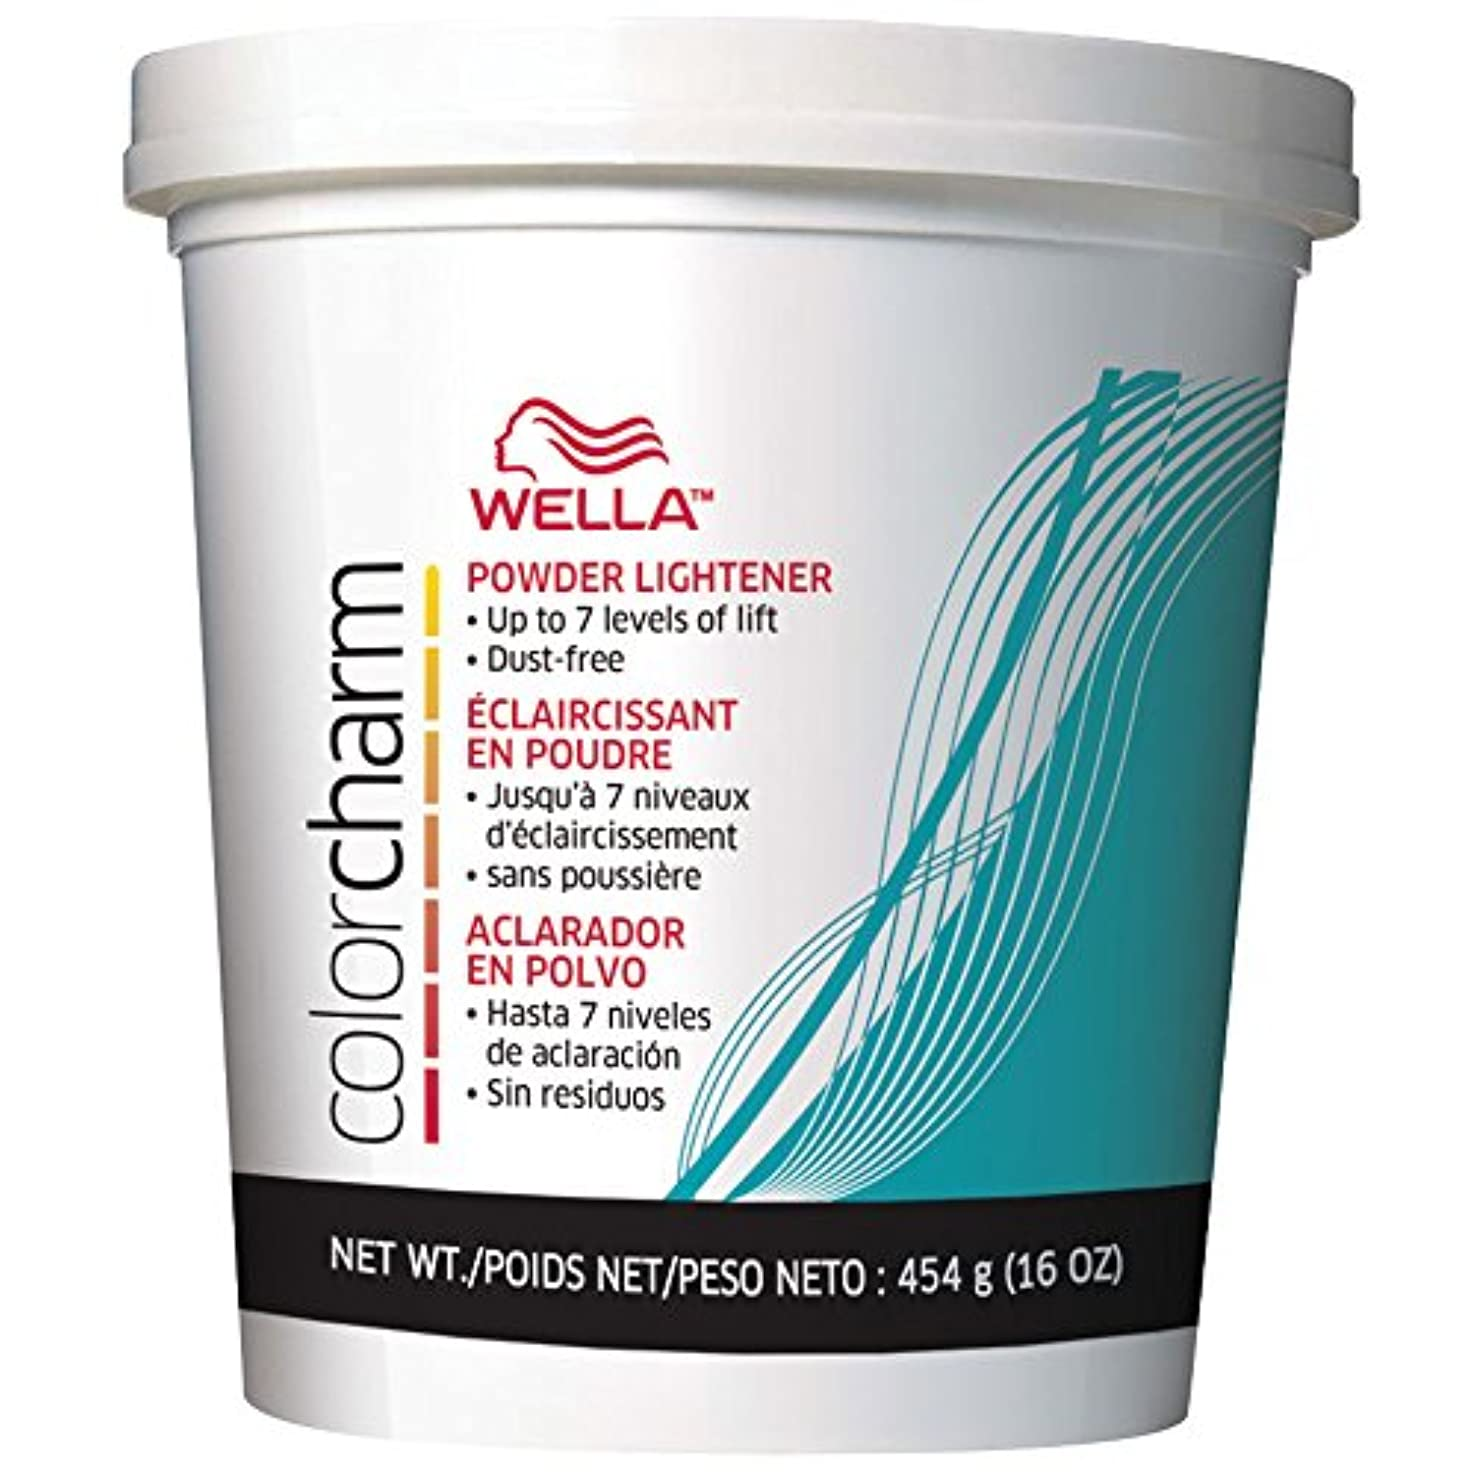 Wella Color Charm Powder Lightener by Wella